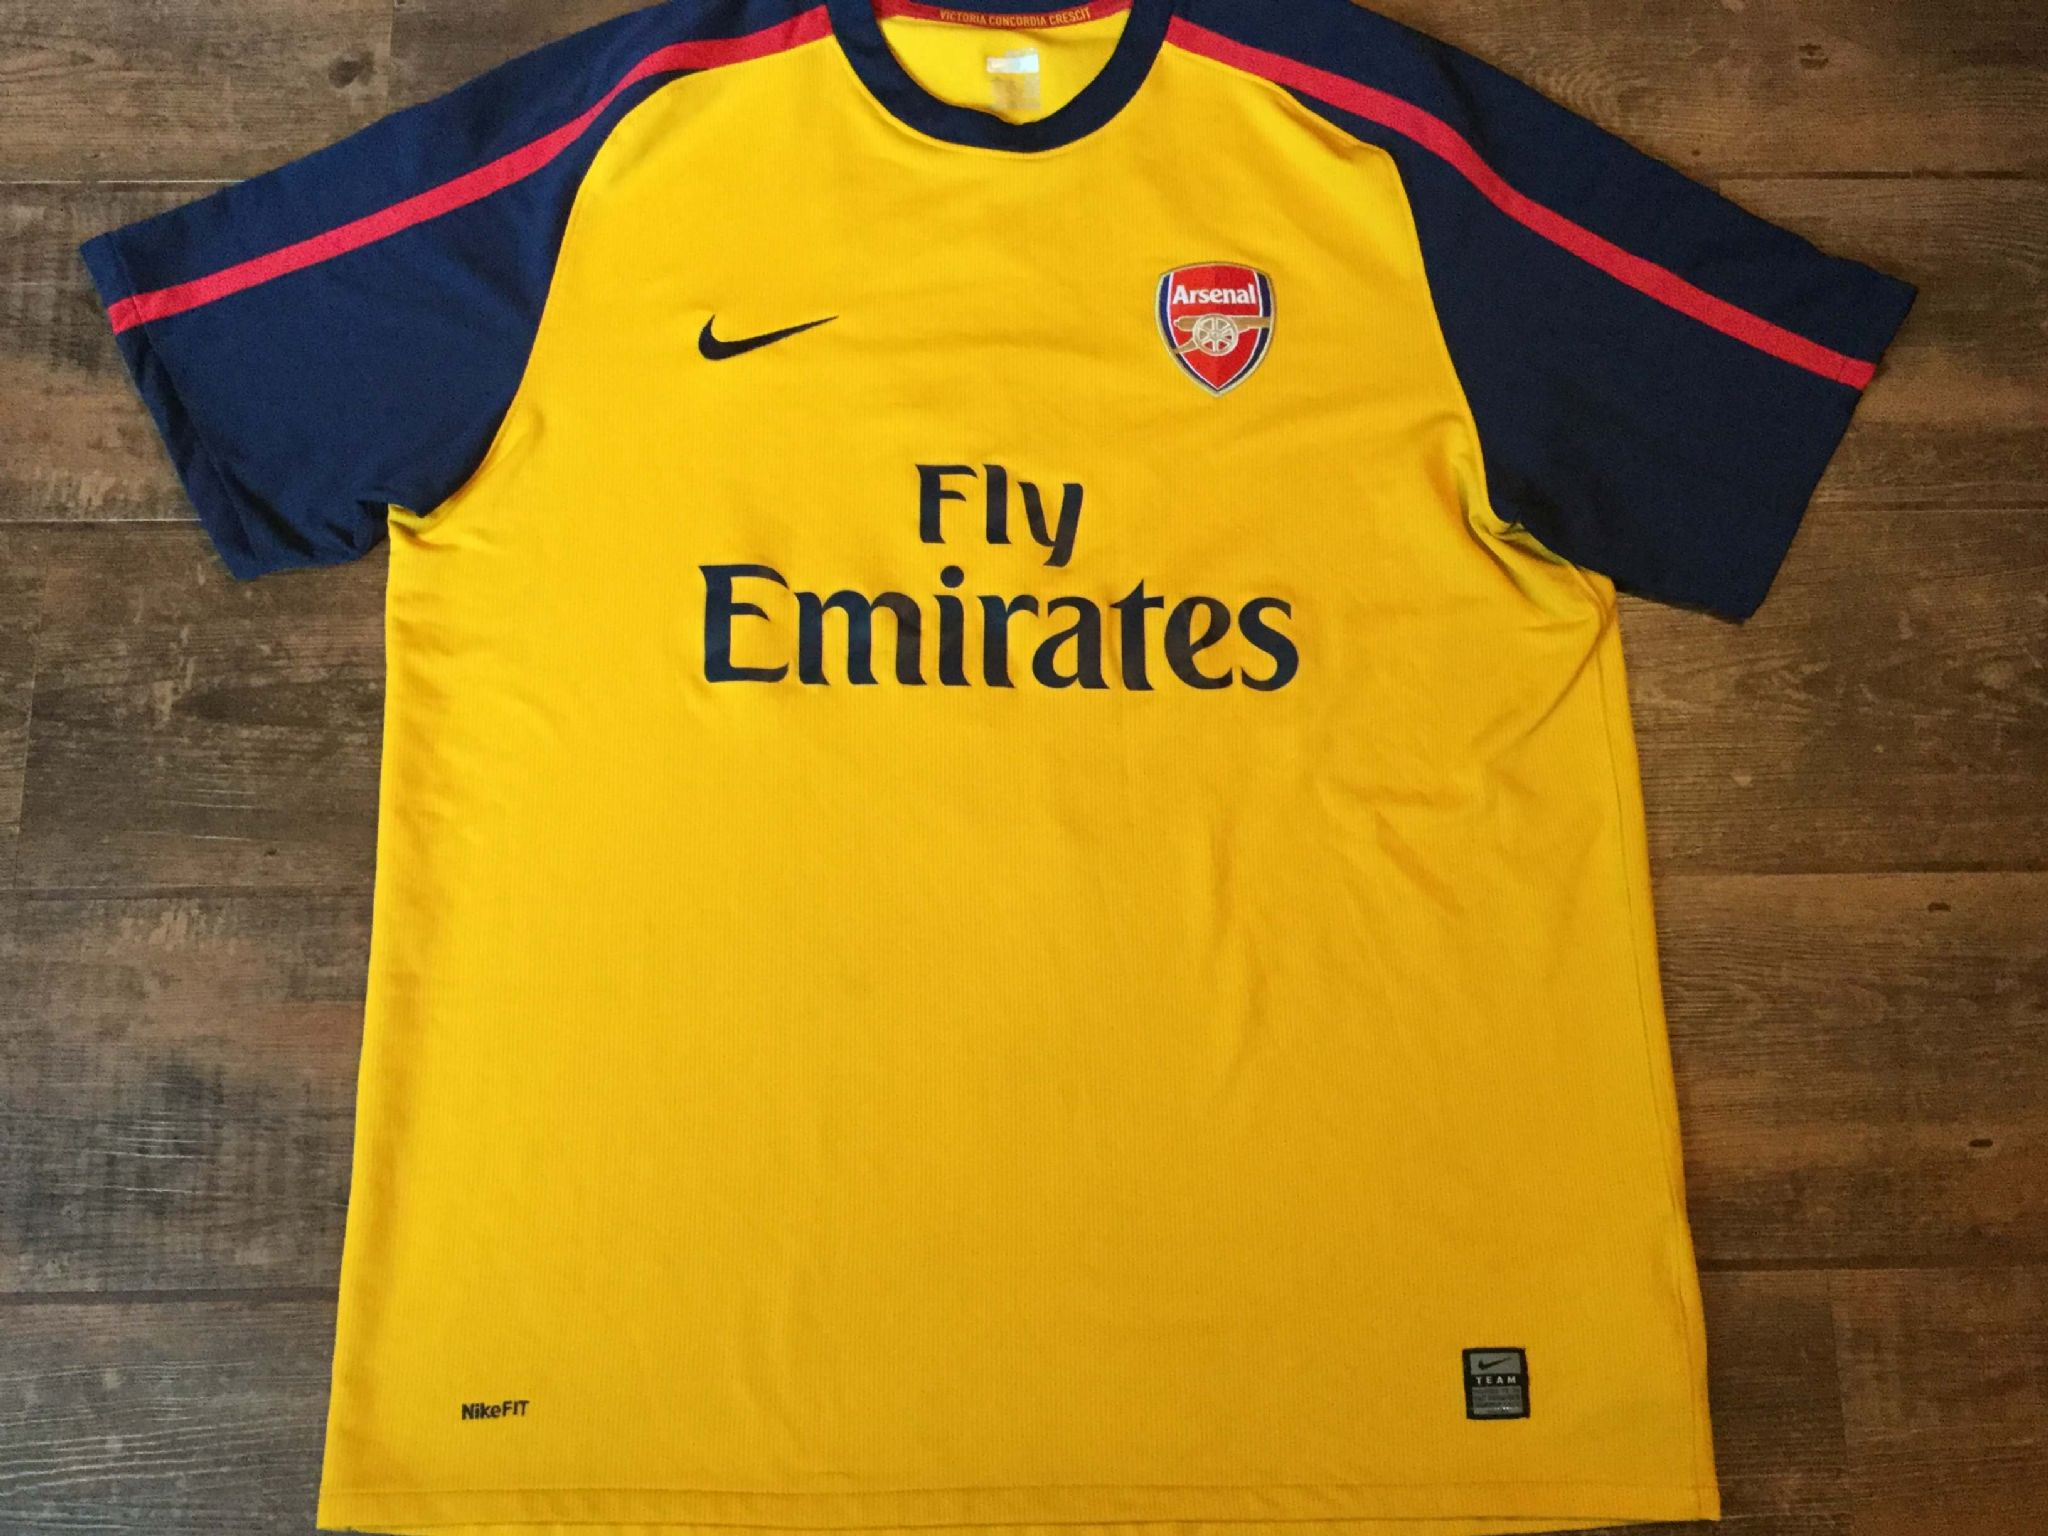 half off 445f8 5f900 Global Classic Football Shirts | 2008 Arsenal Vintage Old ...